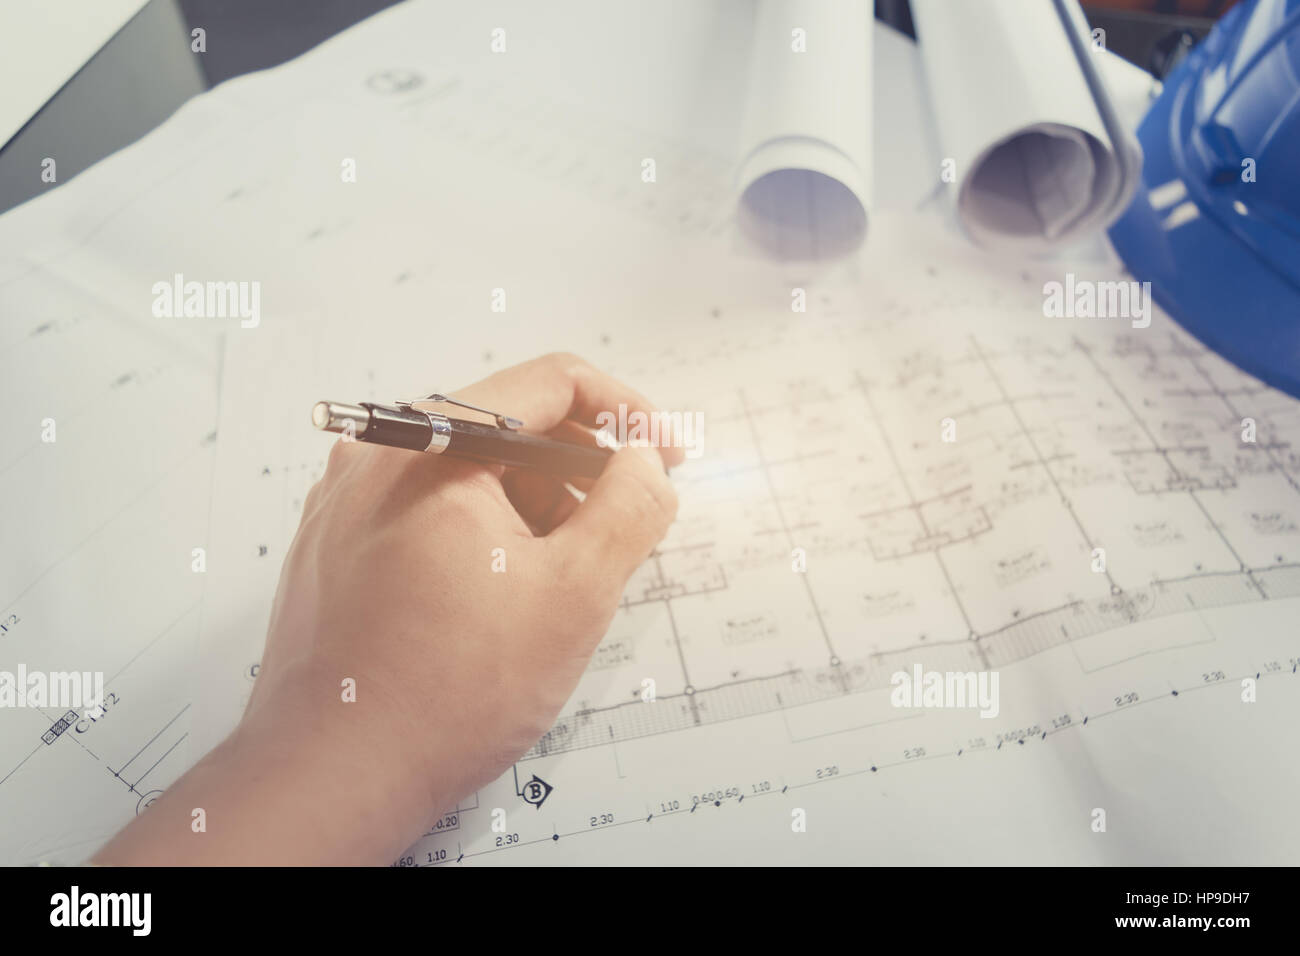 Engineering diagram blueprint paper drafting project sketch stock engineering diagram blueprint paper drafting project sketch architectural selective focus malvernweather Image collections